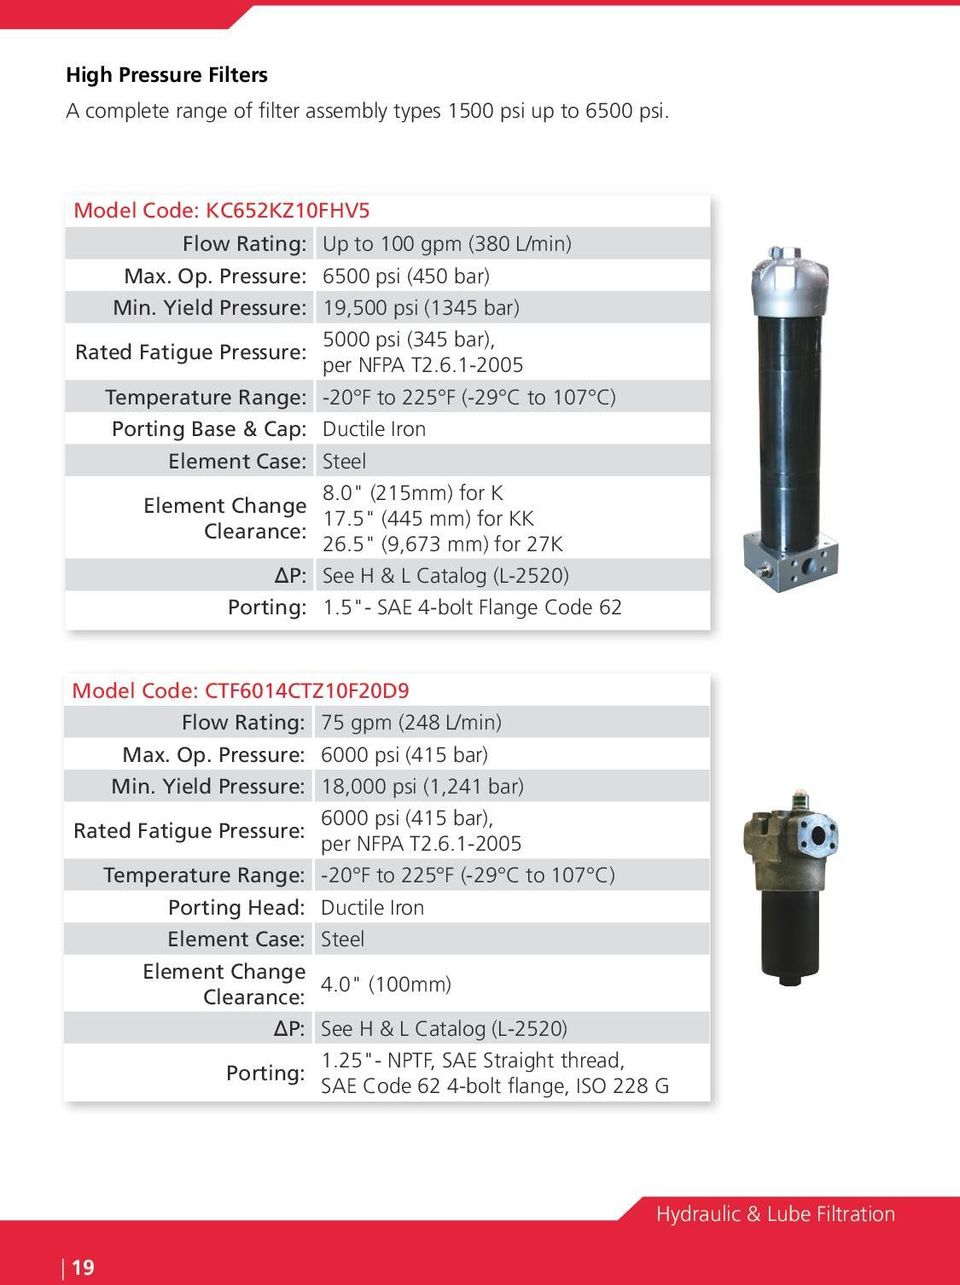 Advanced Fluid Conditioning Solutions  Hydraulic & Lube